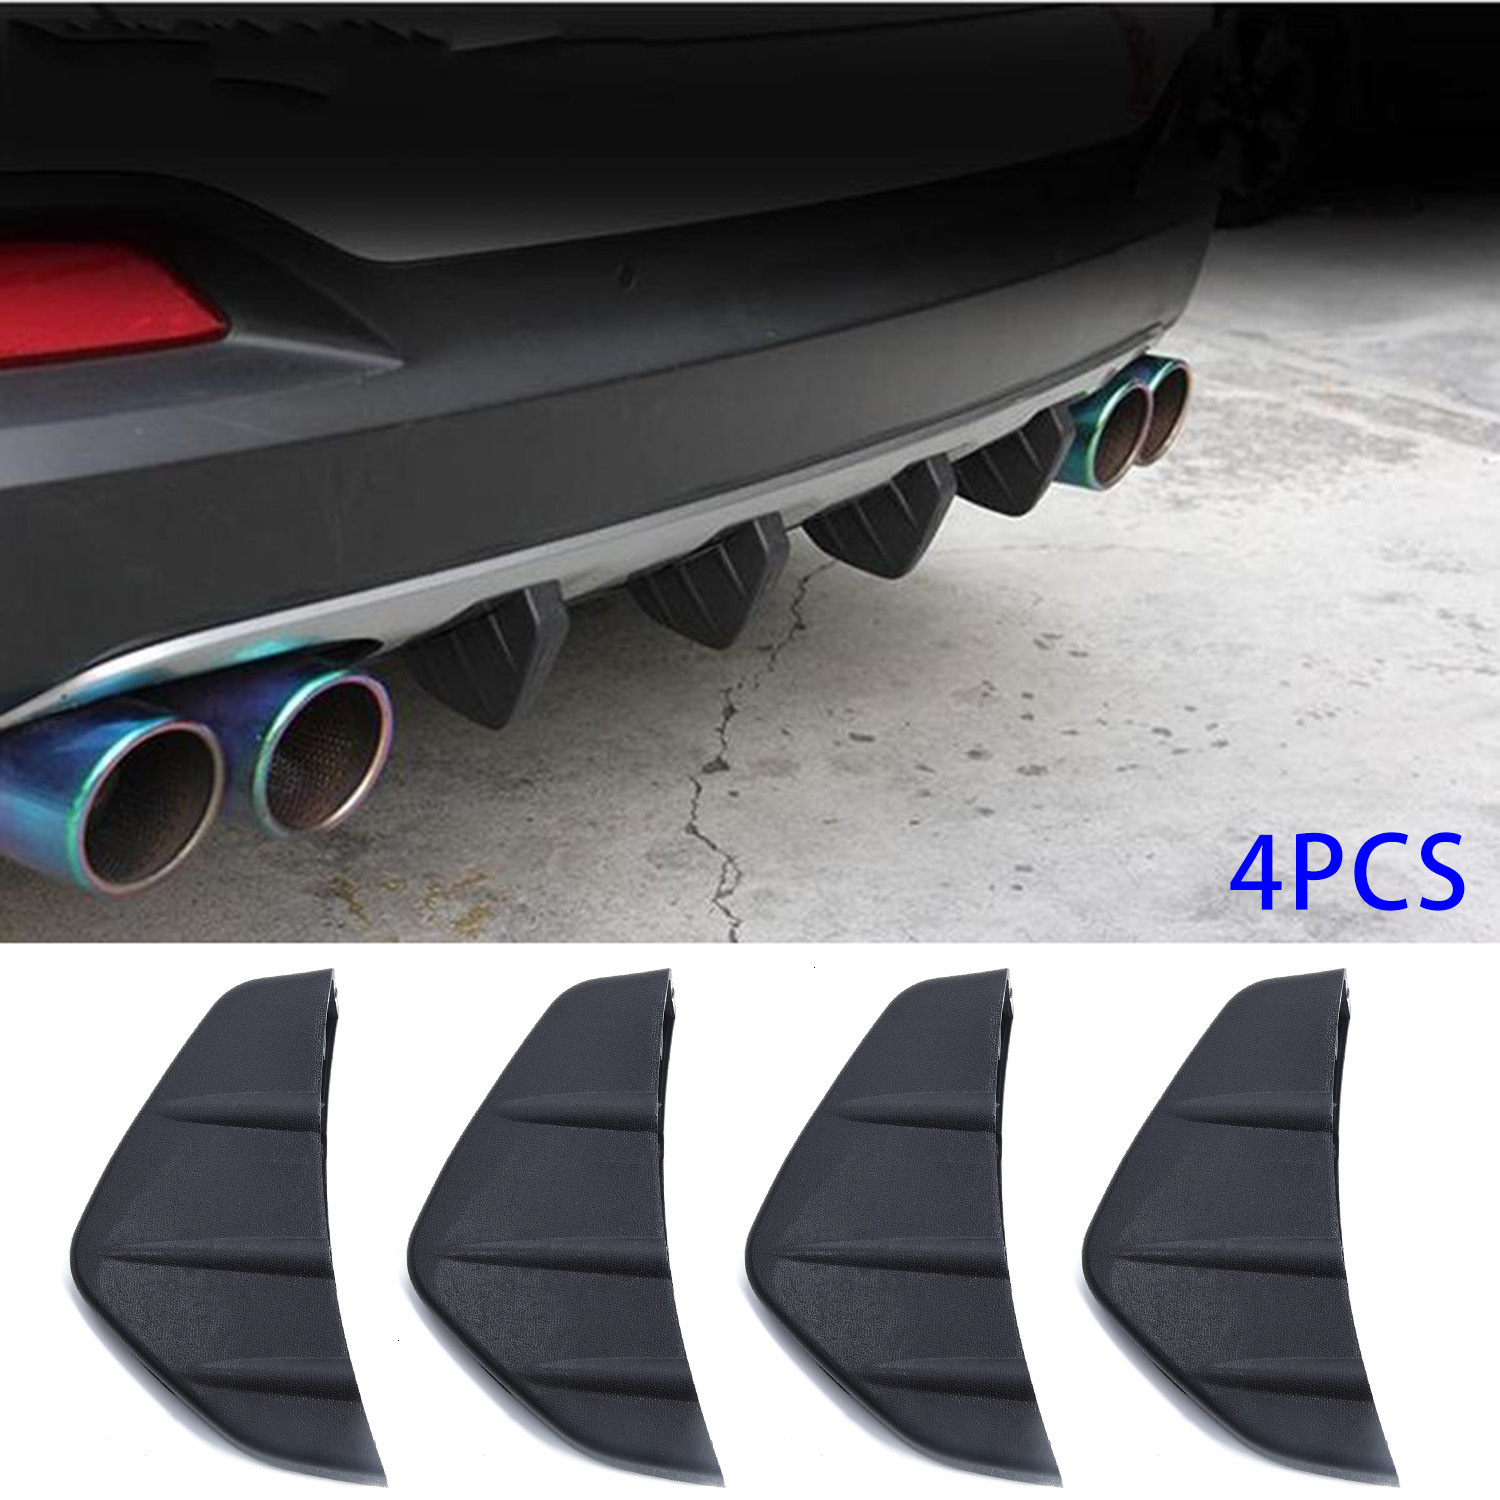 4pcs PVC Car Rear Bumper Diffuser Scratch Protector Cover Molding Trim Decals Auto Accessories Car-Styling